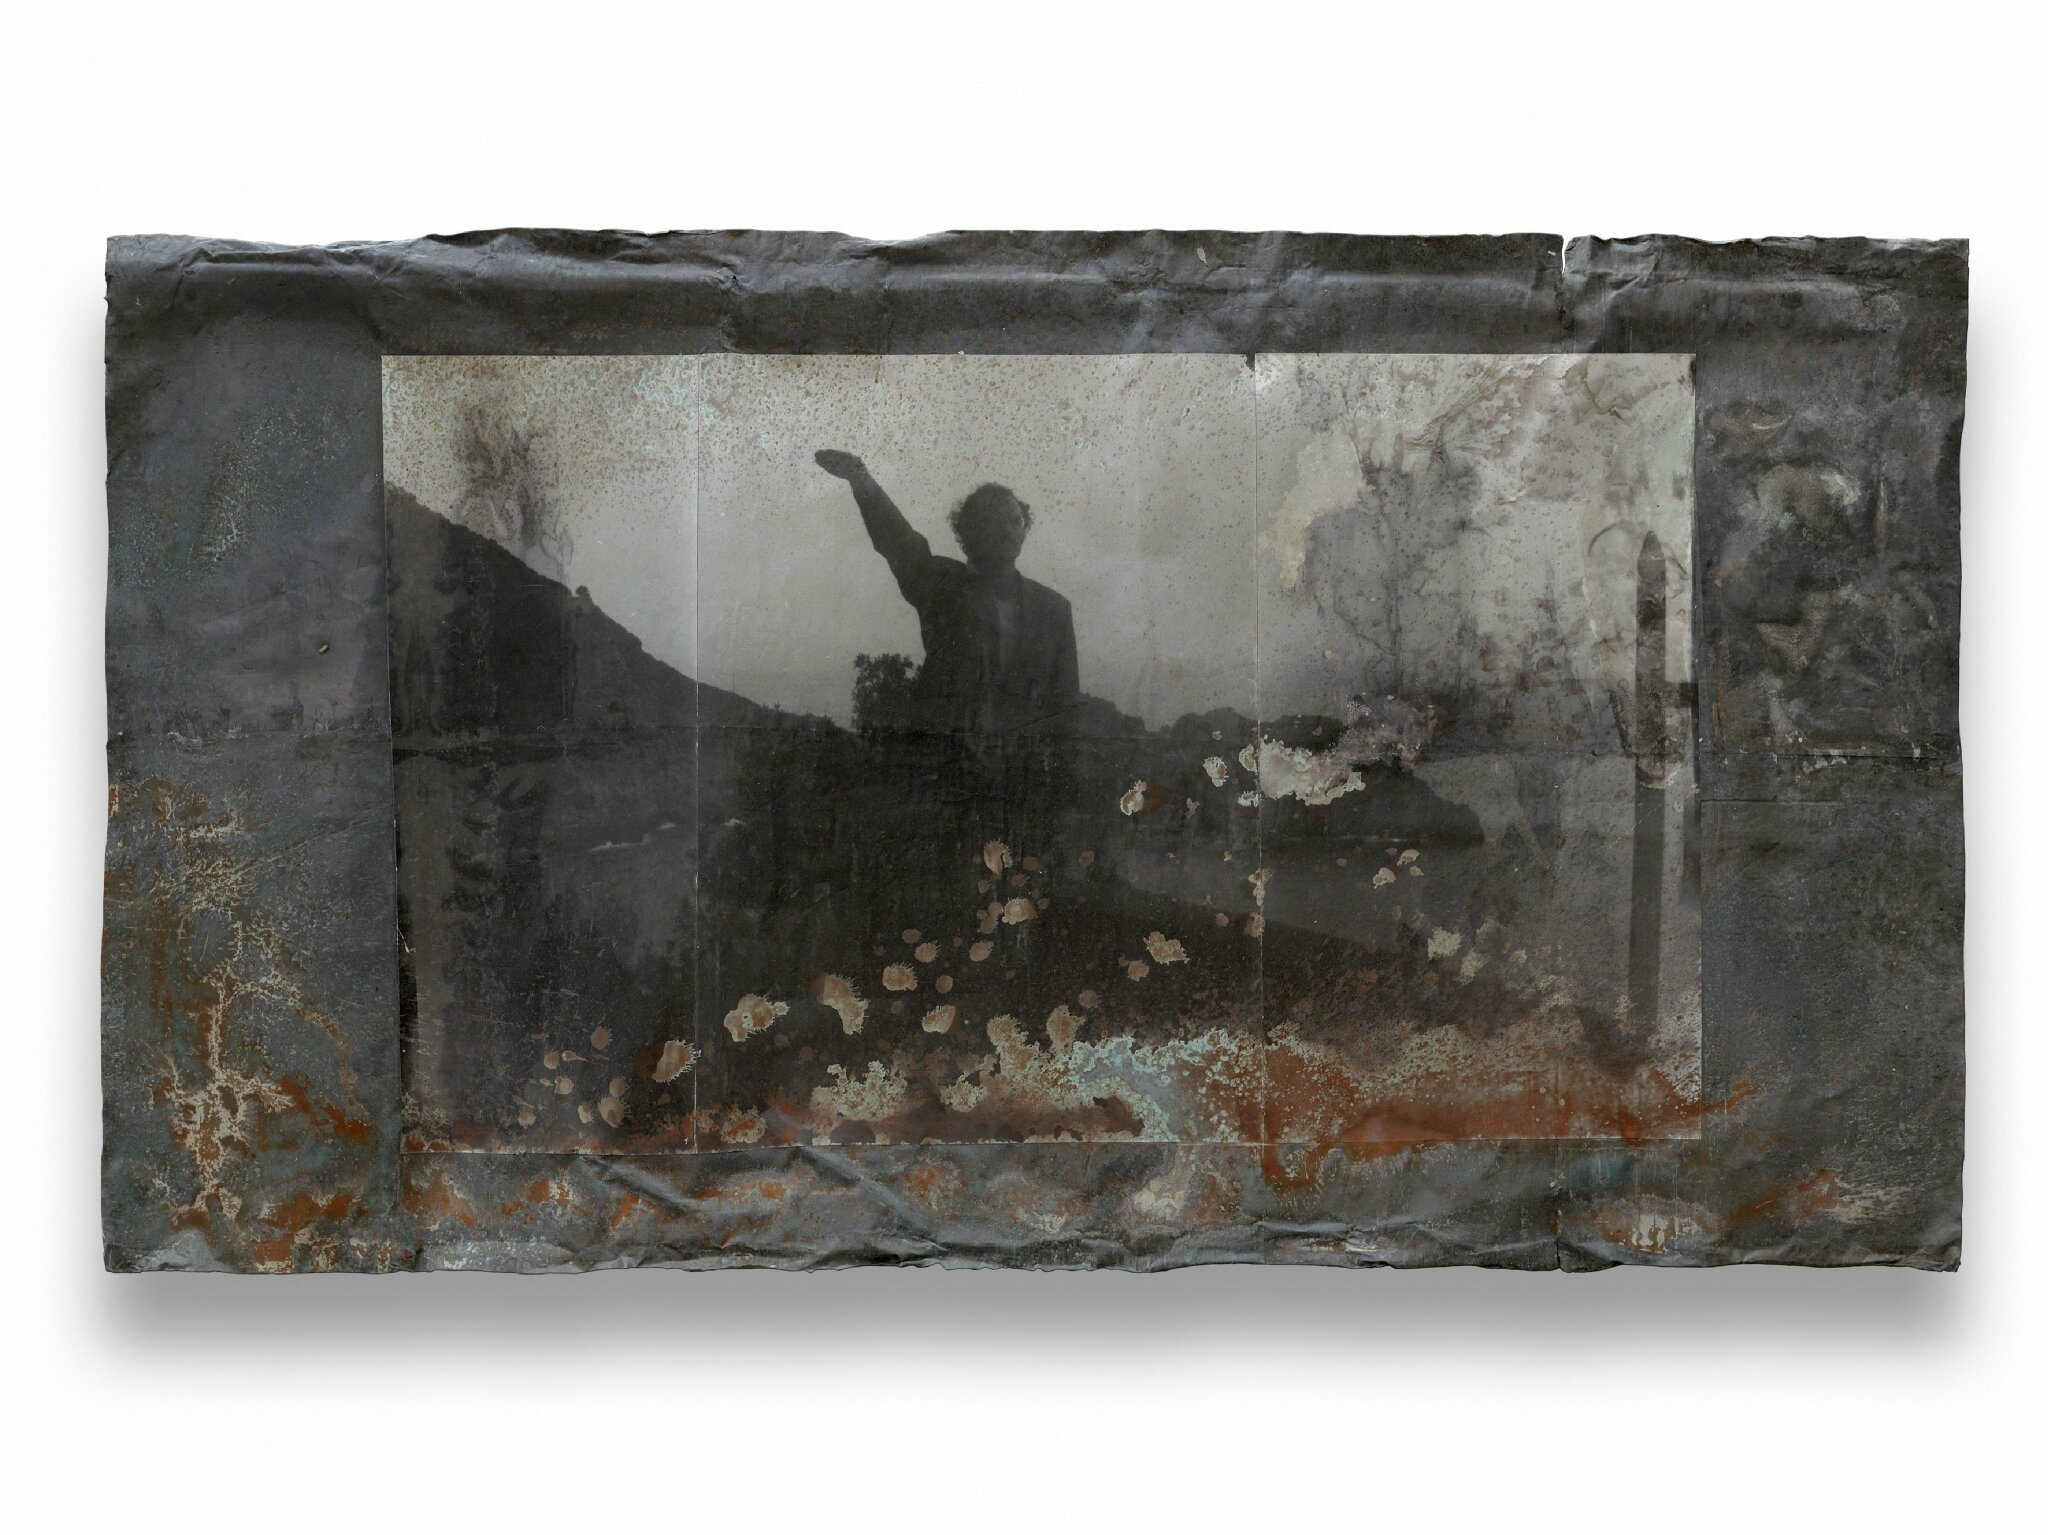 The Michael & Eleonore Stoffel Stiftung acquired five works by Anselm Kiefer for the Bayerische Staatsgemäldesammlungen